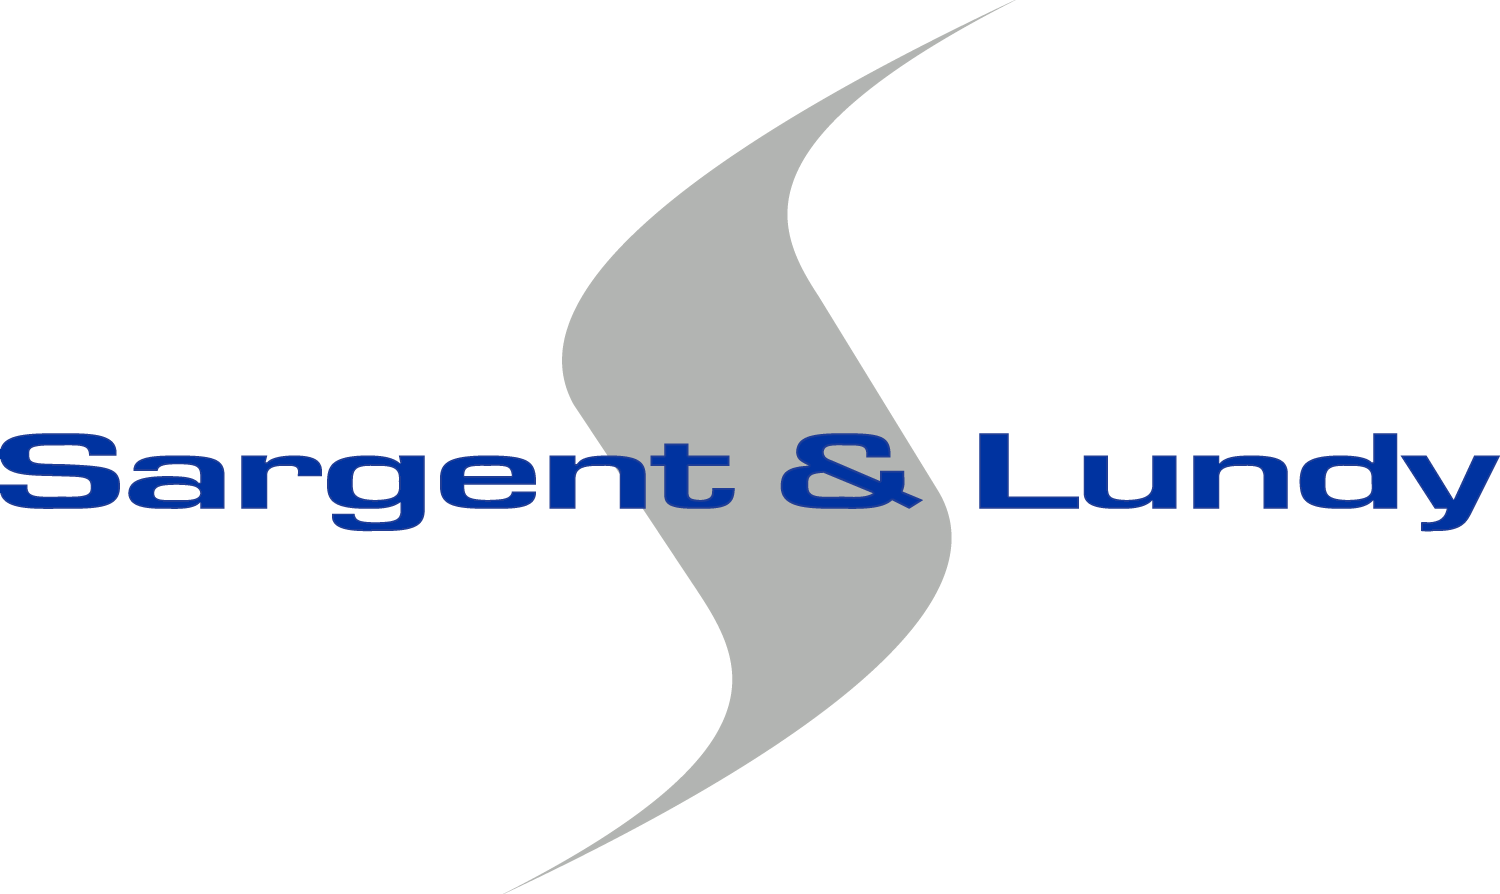 Jobs at Sargent & Lundy